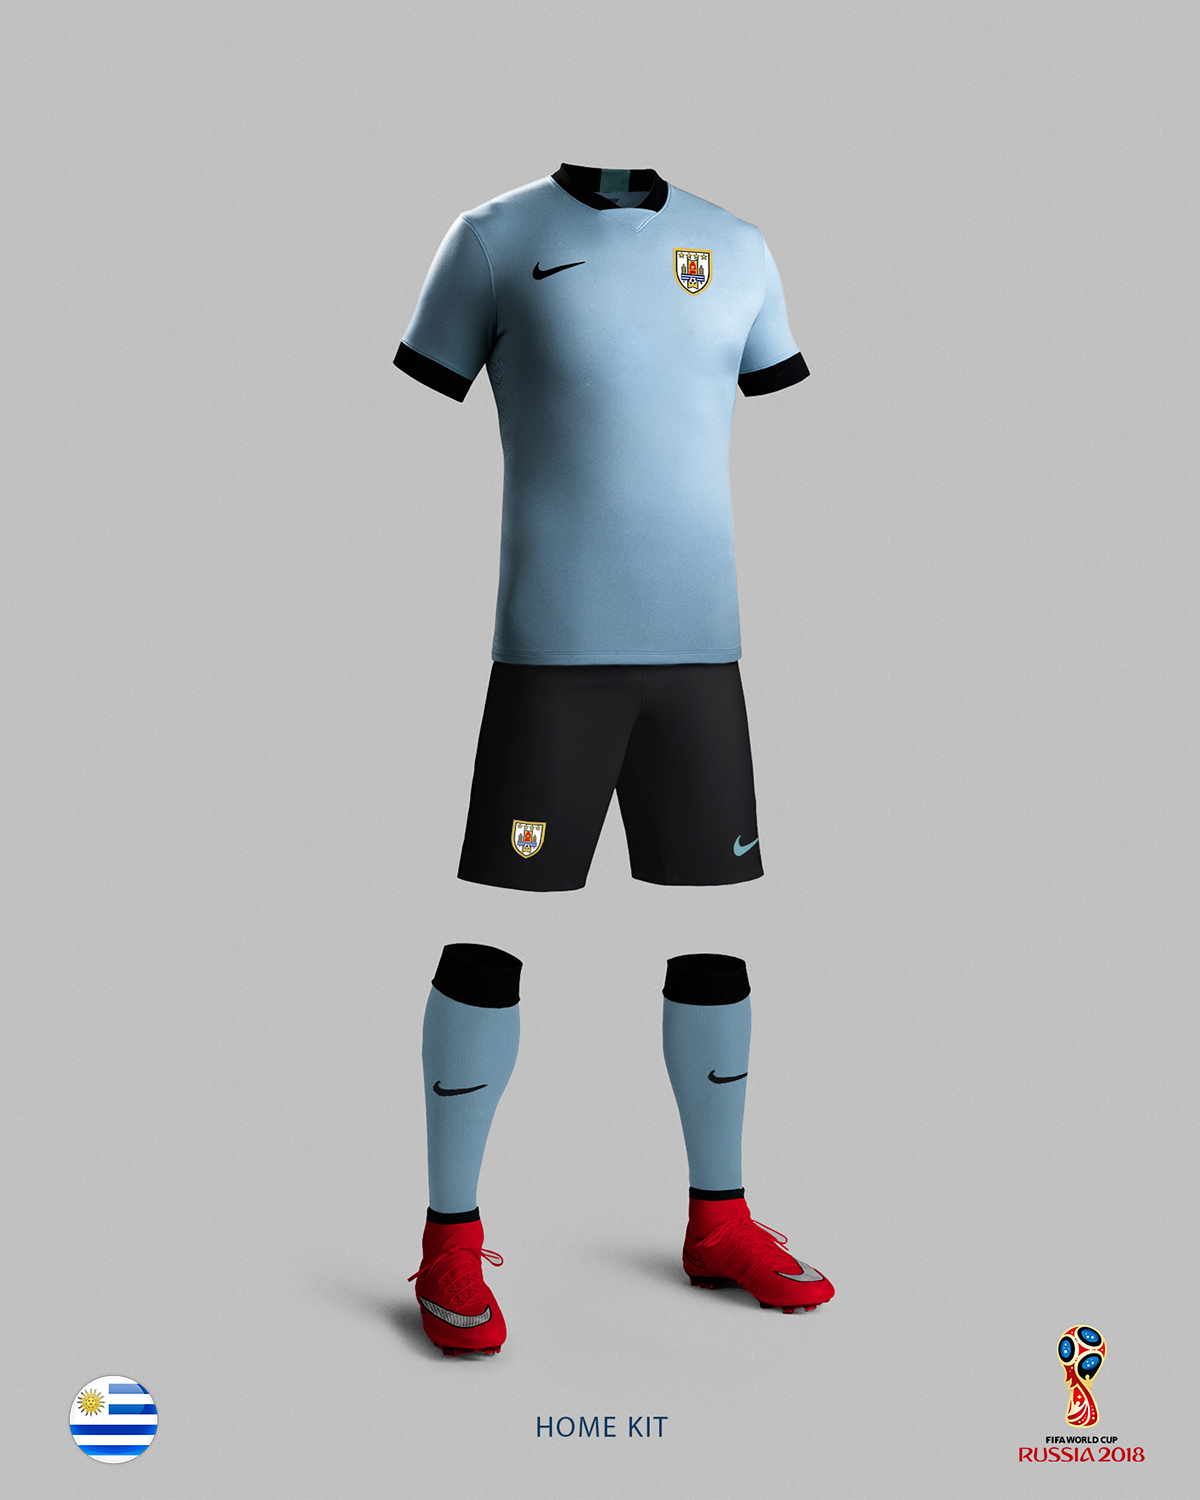 00f93f180 Uruguay Soccer Kit - 2018 FIFA World Cup Russia. Martin Rebollo •. Follow  Following Unfollow. PLEASE DONT FORGET TO APPRECIATE!